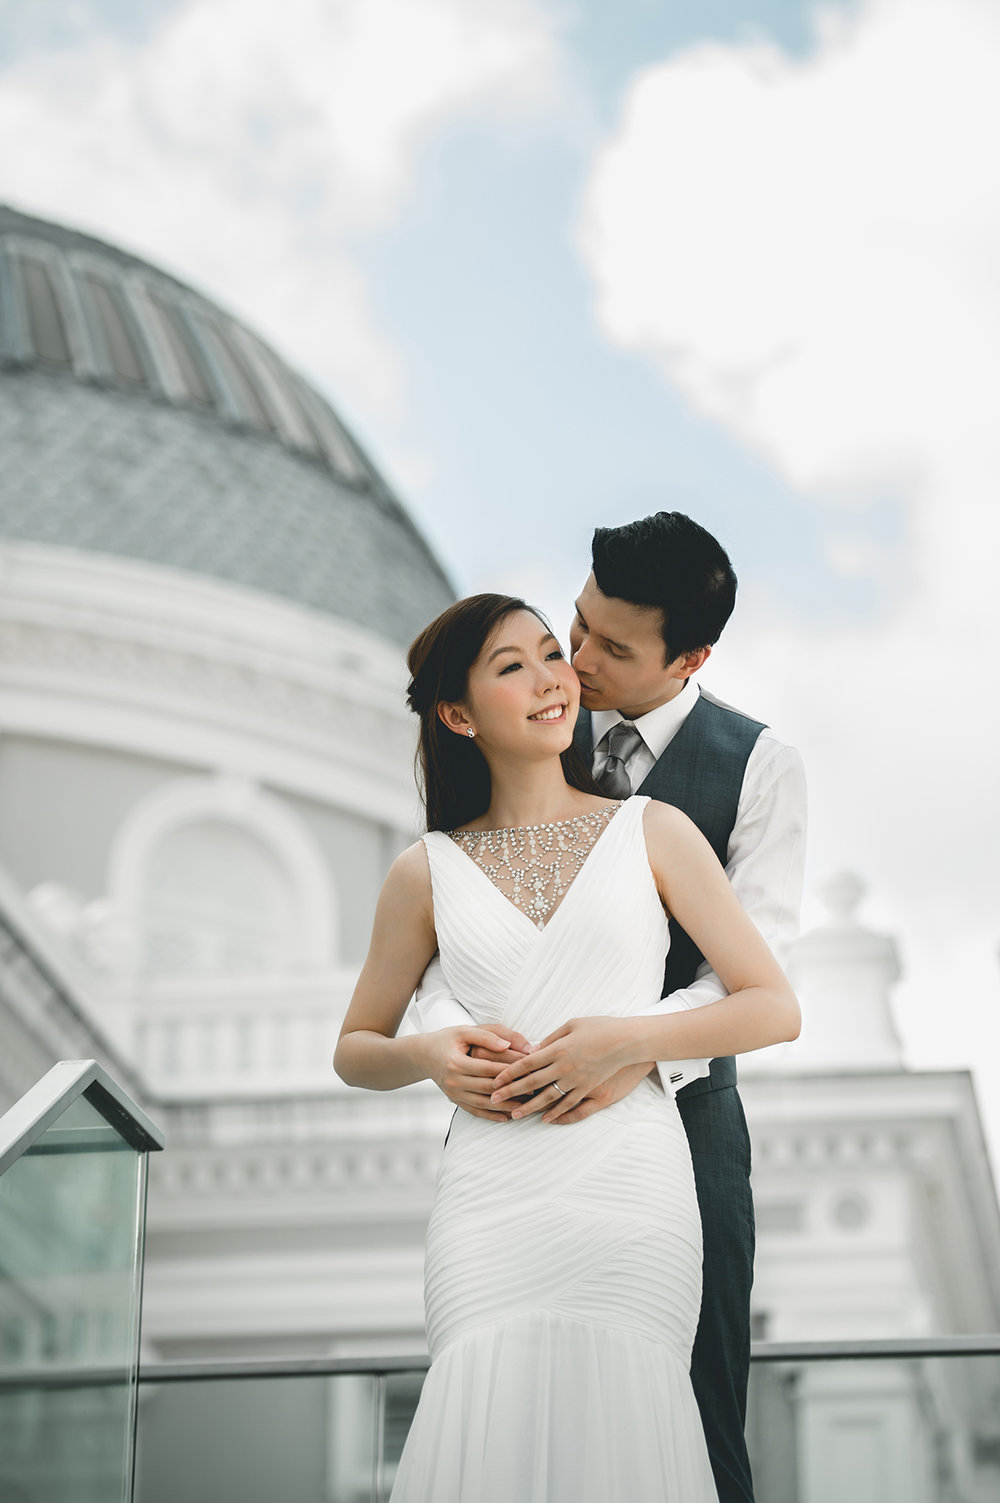 Prewedding National Museum 00004b.JPG